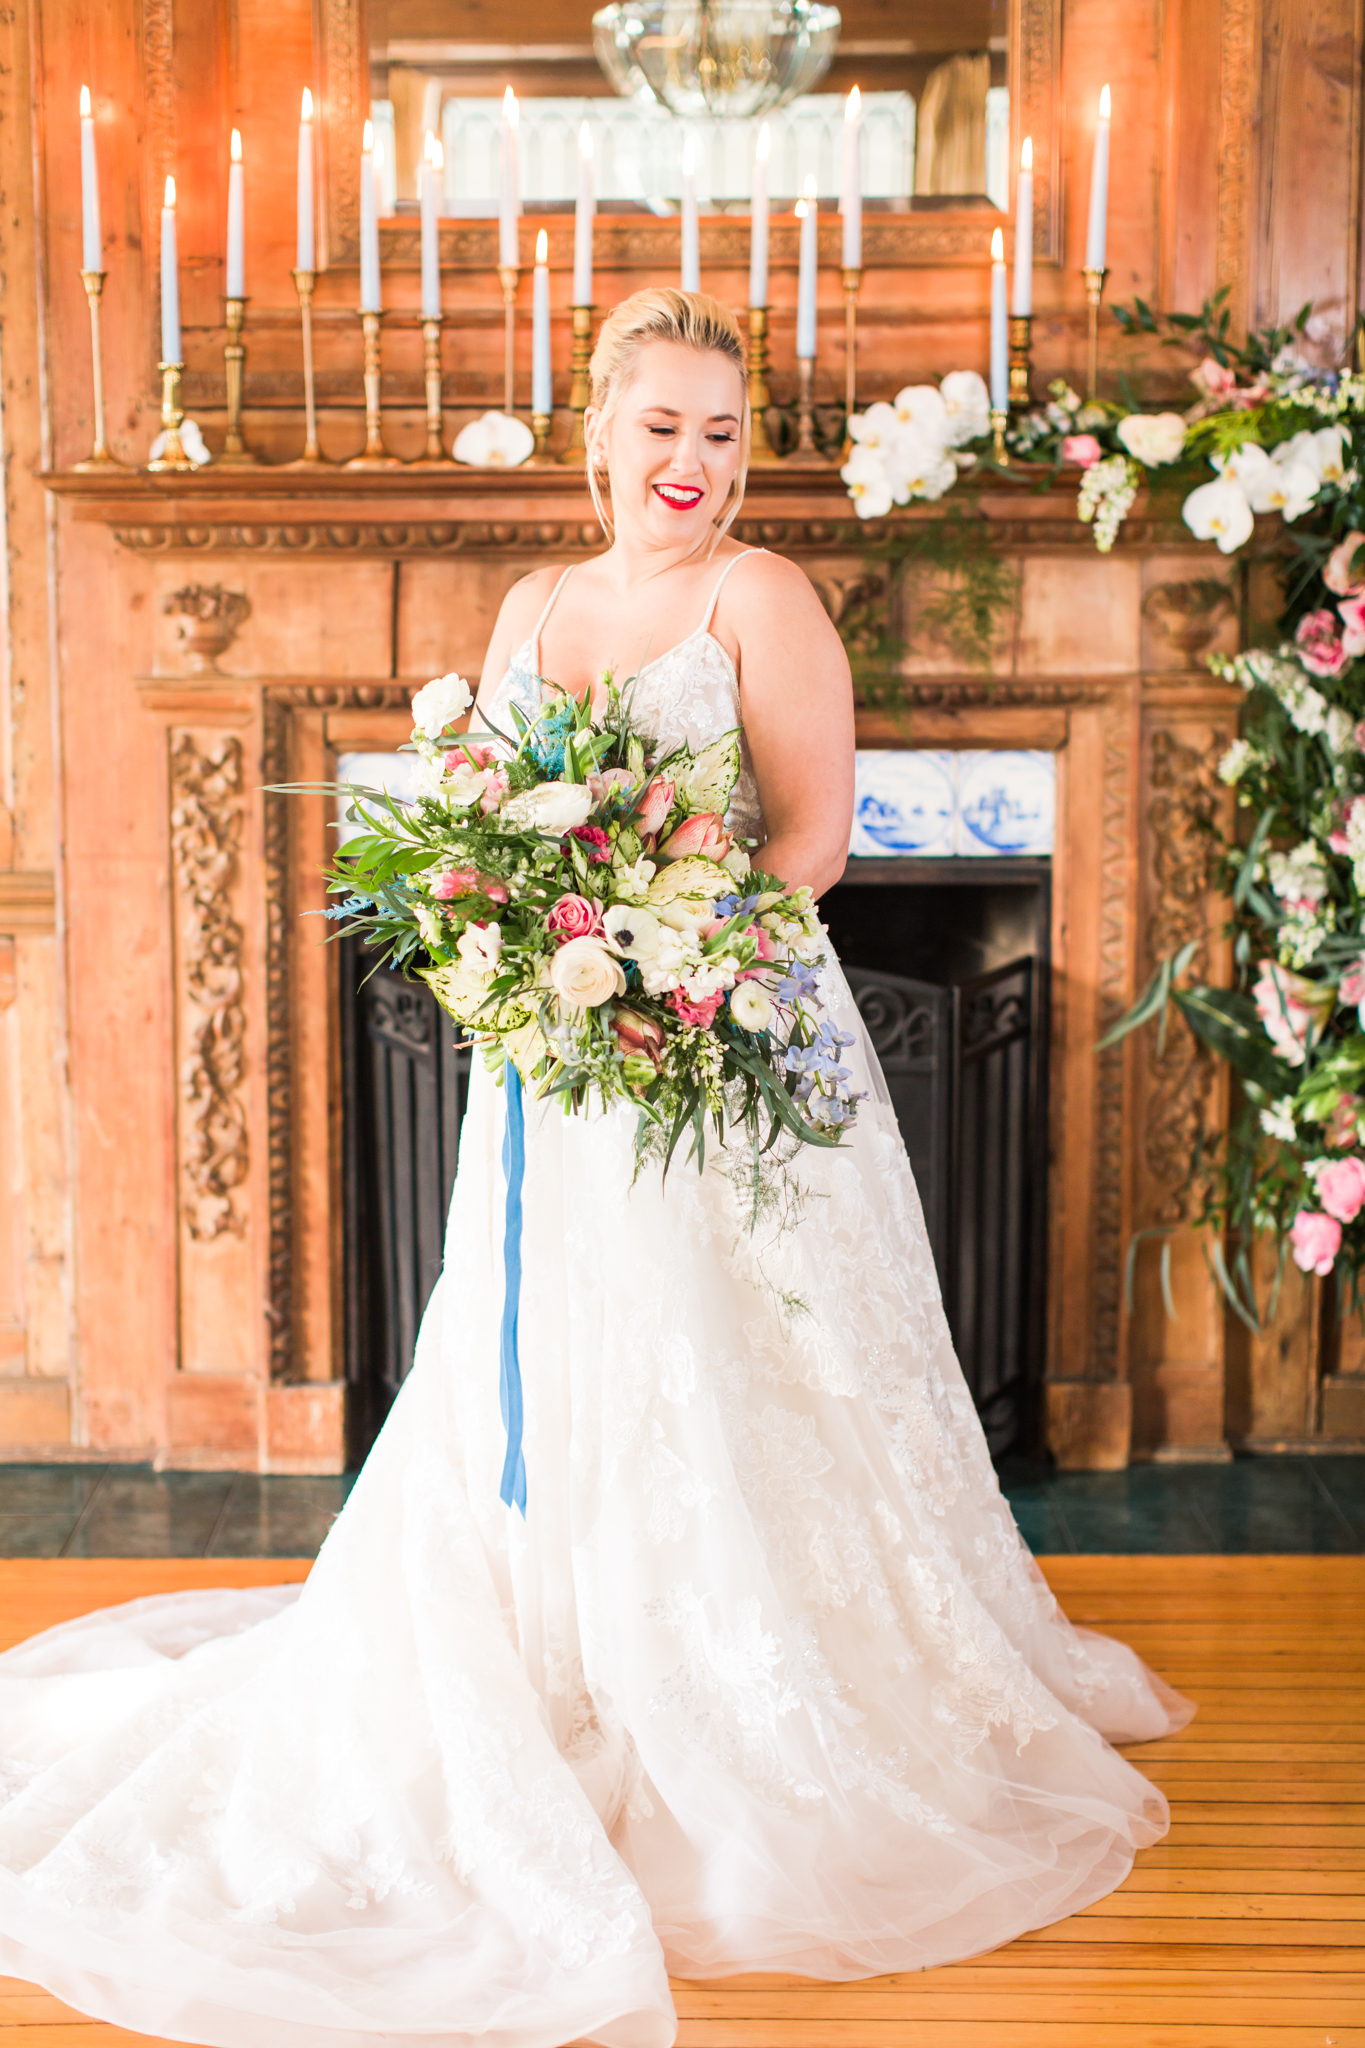 Elegant and whimsical bride with a red lip stick, pink, green and white flowers for her bouquet and an A-Line dress - Pearl Weddings & Events